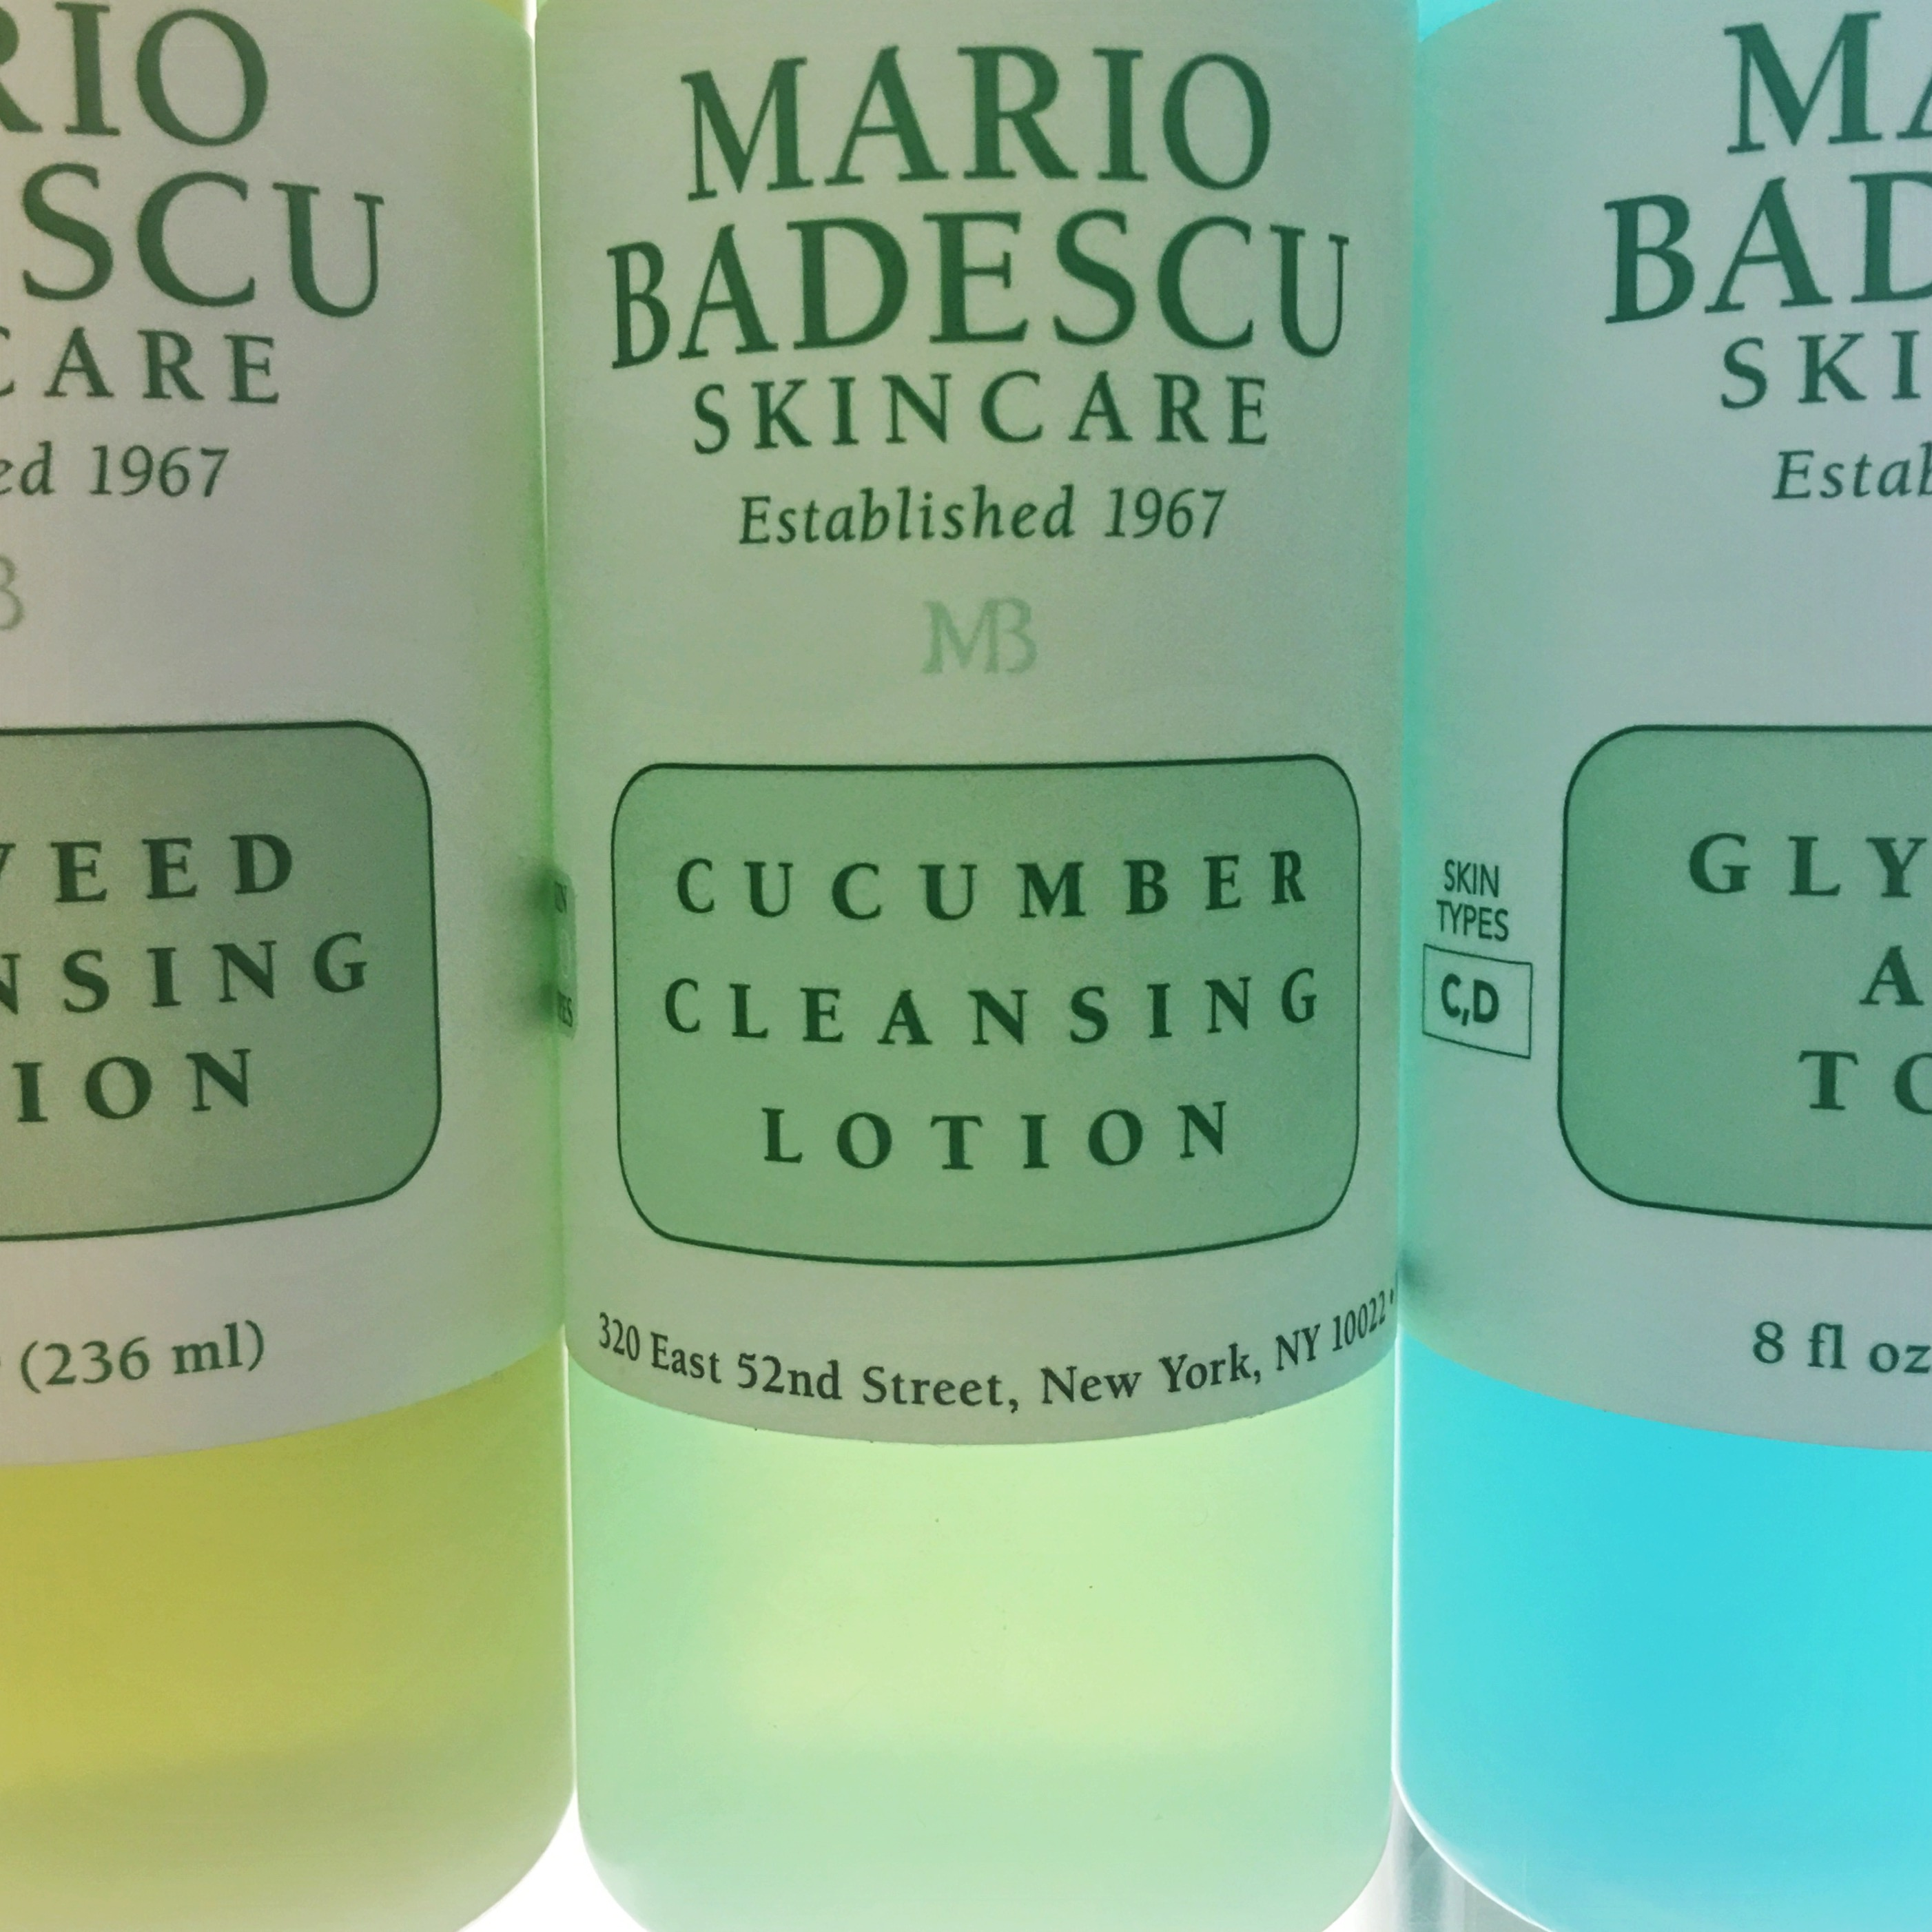 Toners, astringent, cleansing lotion